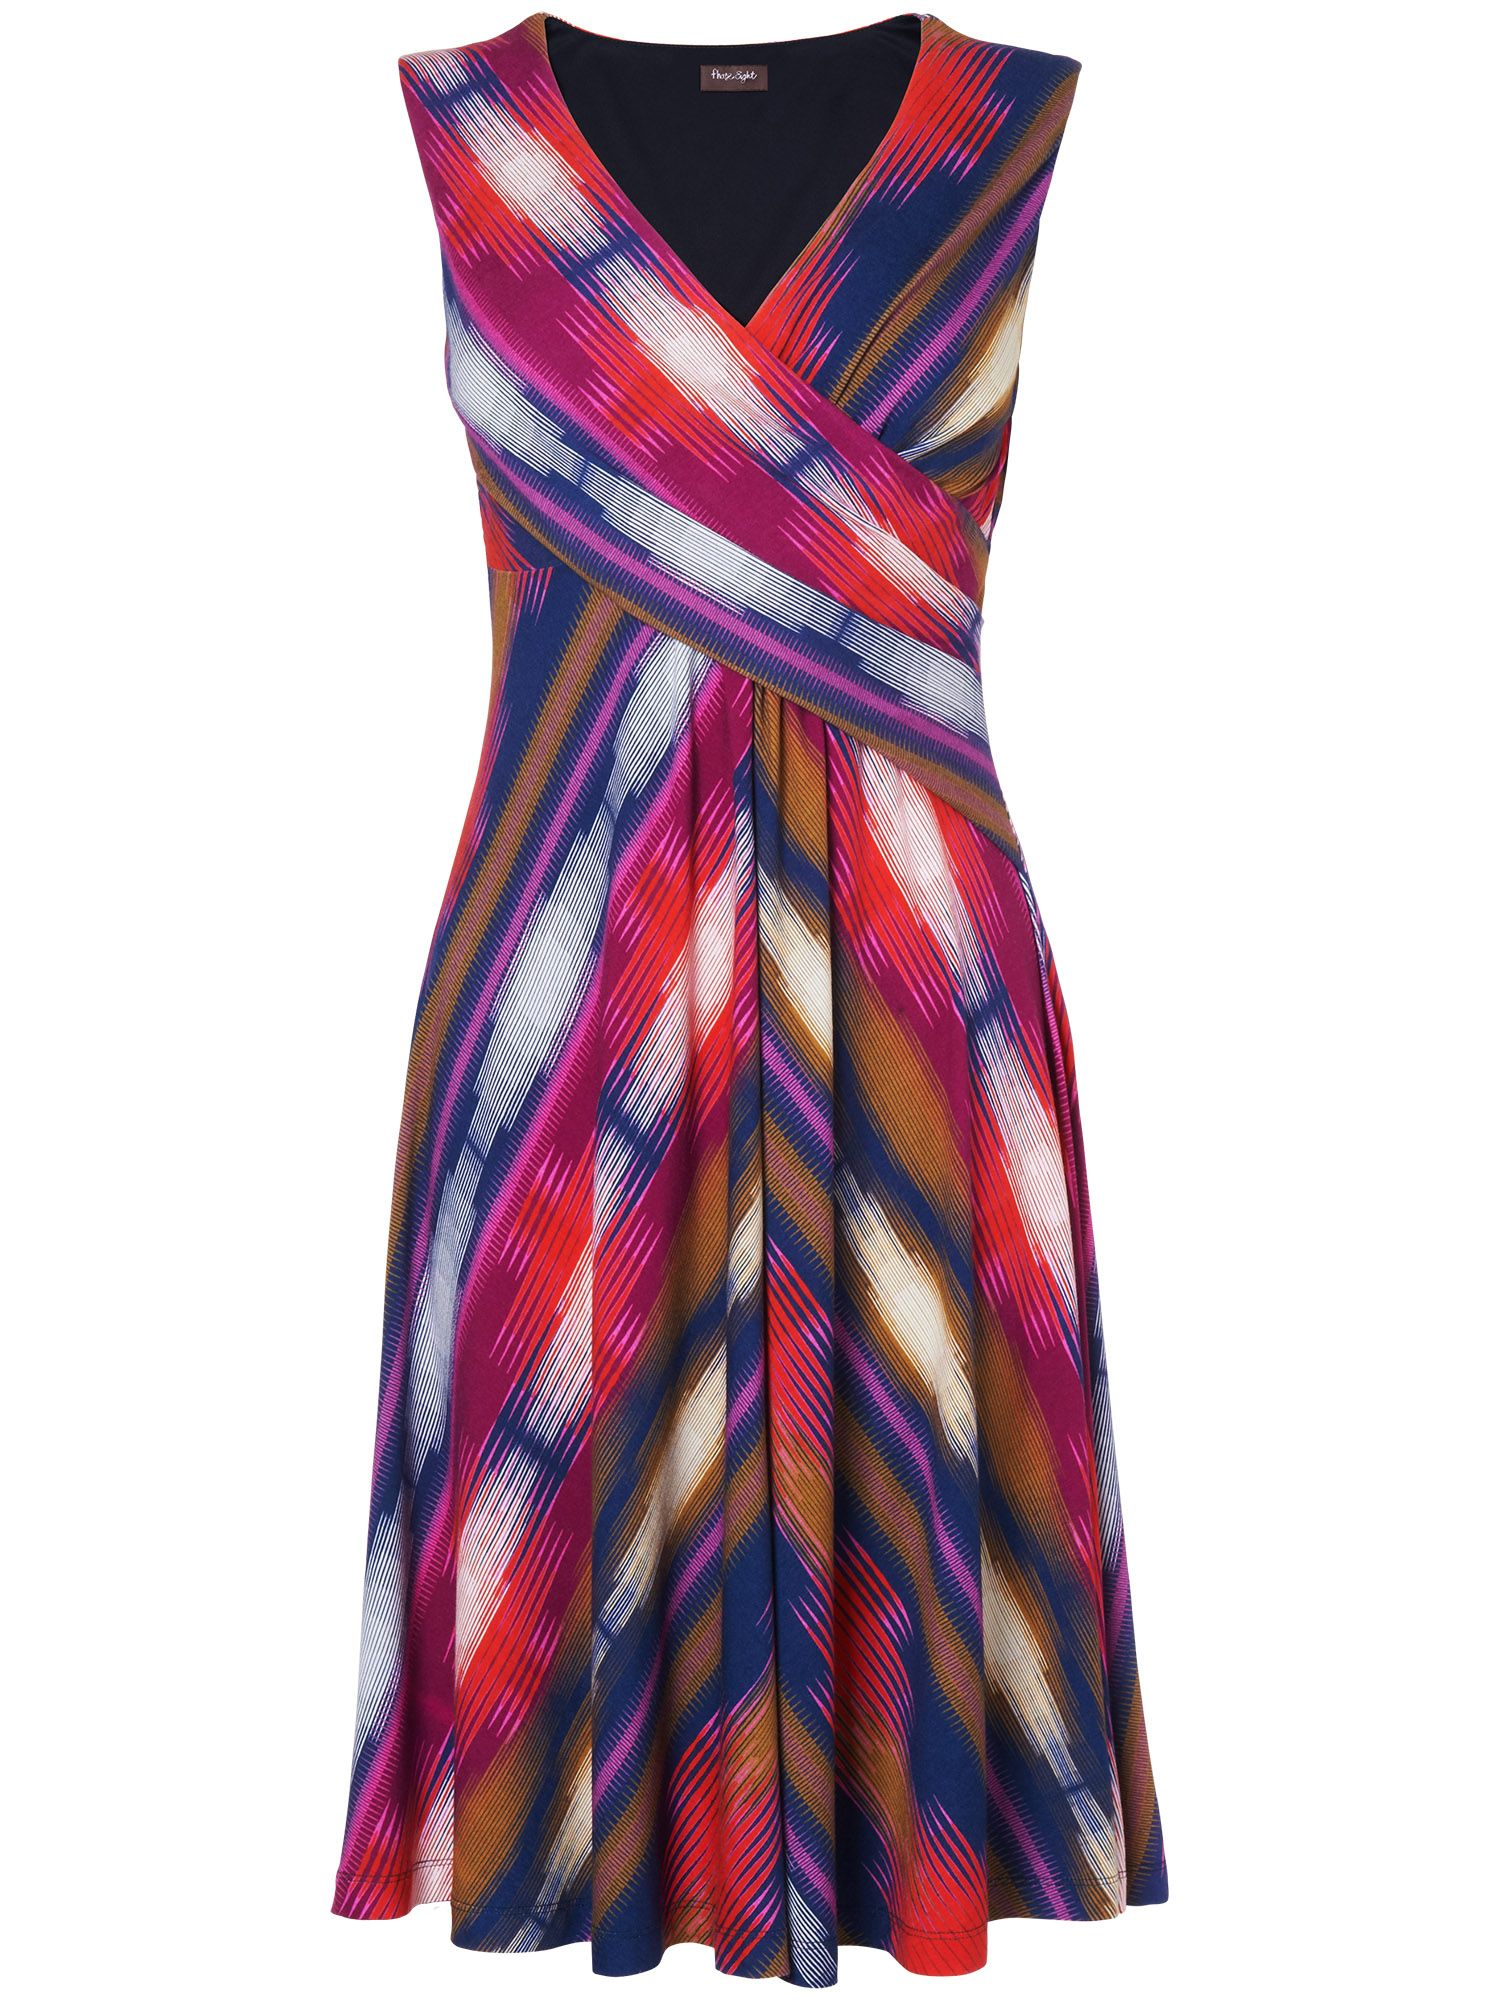 Clemence chevron dress